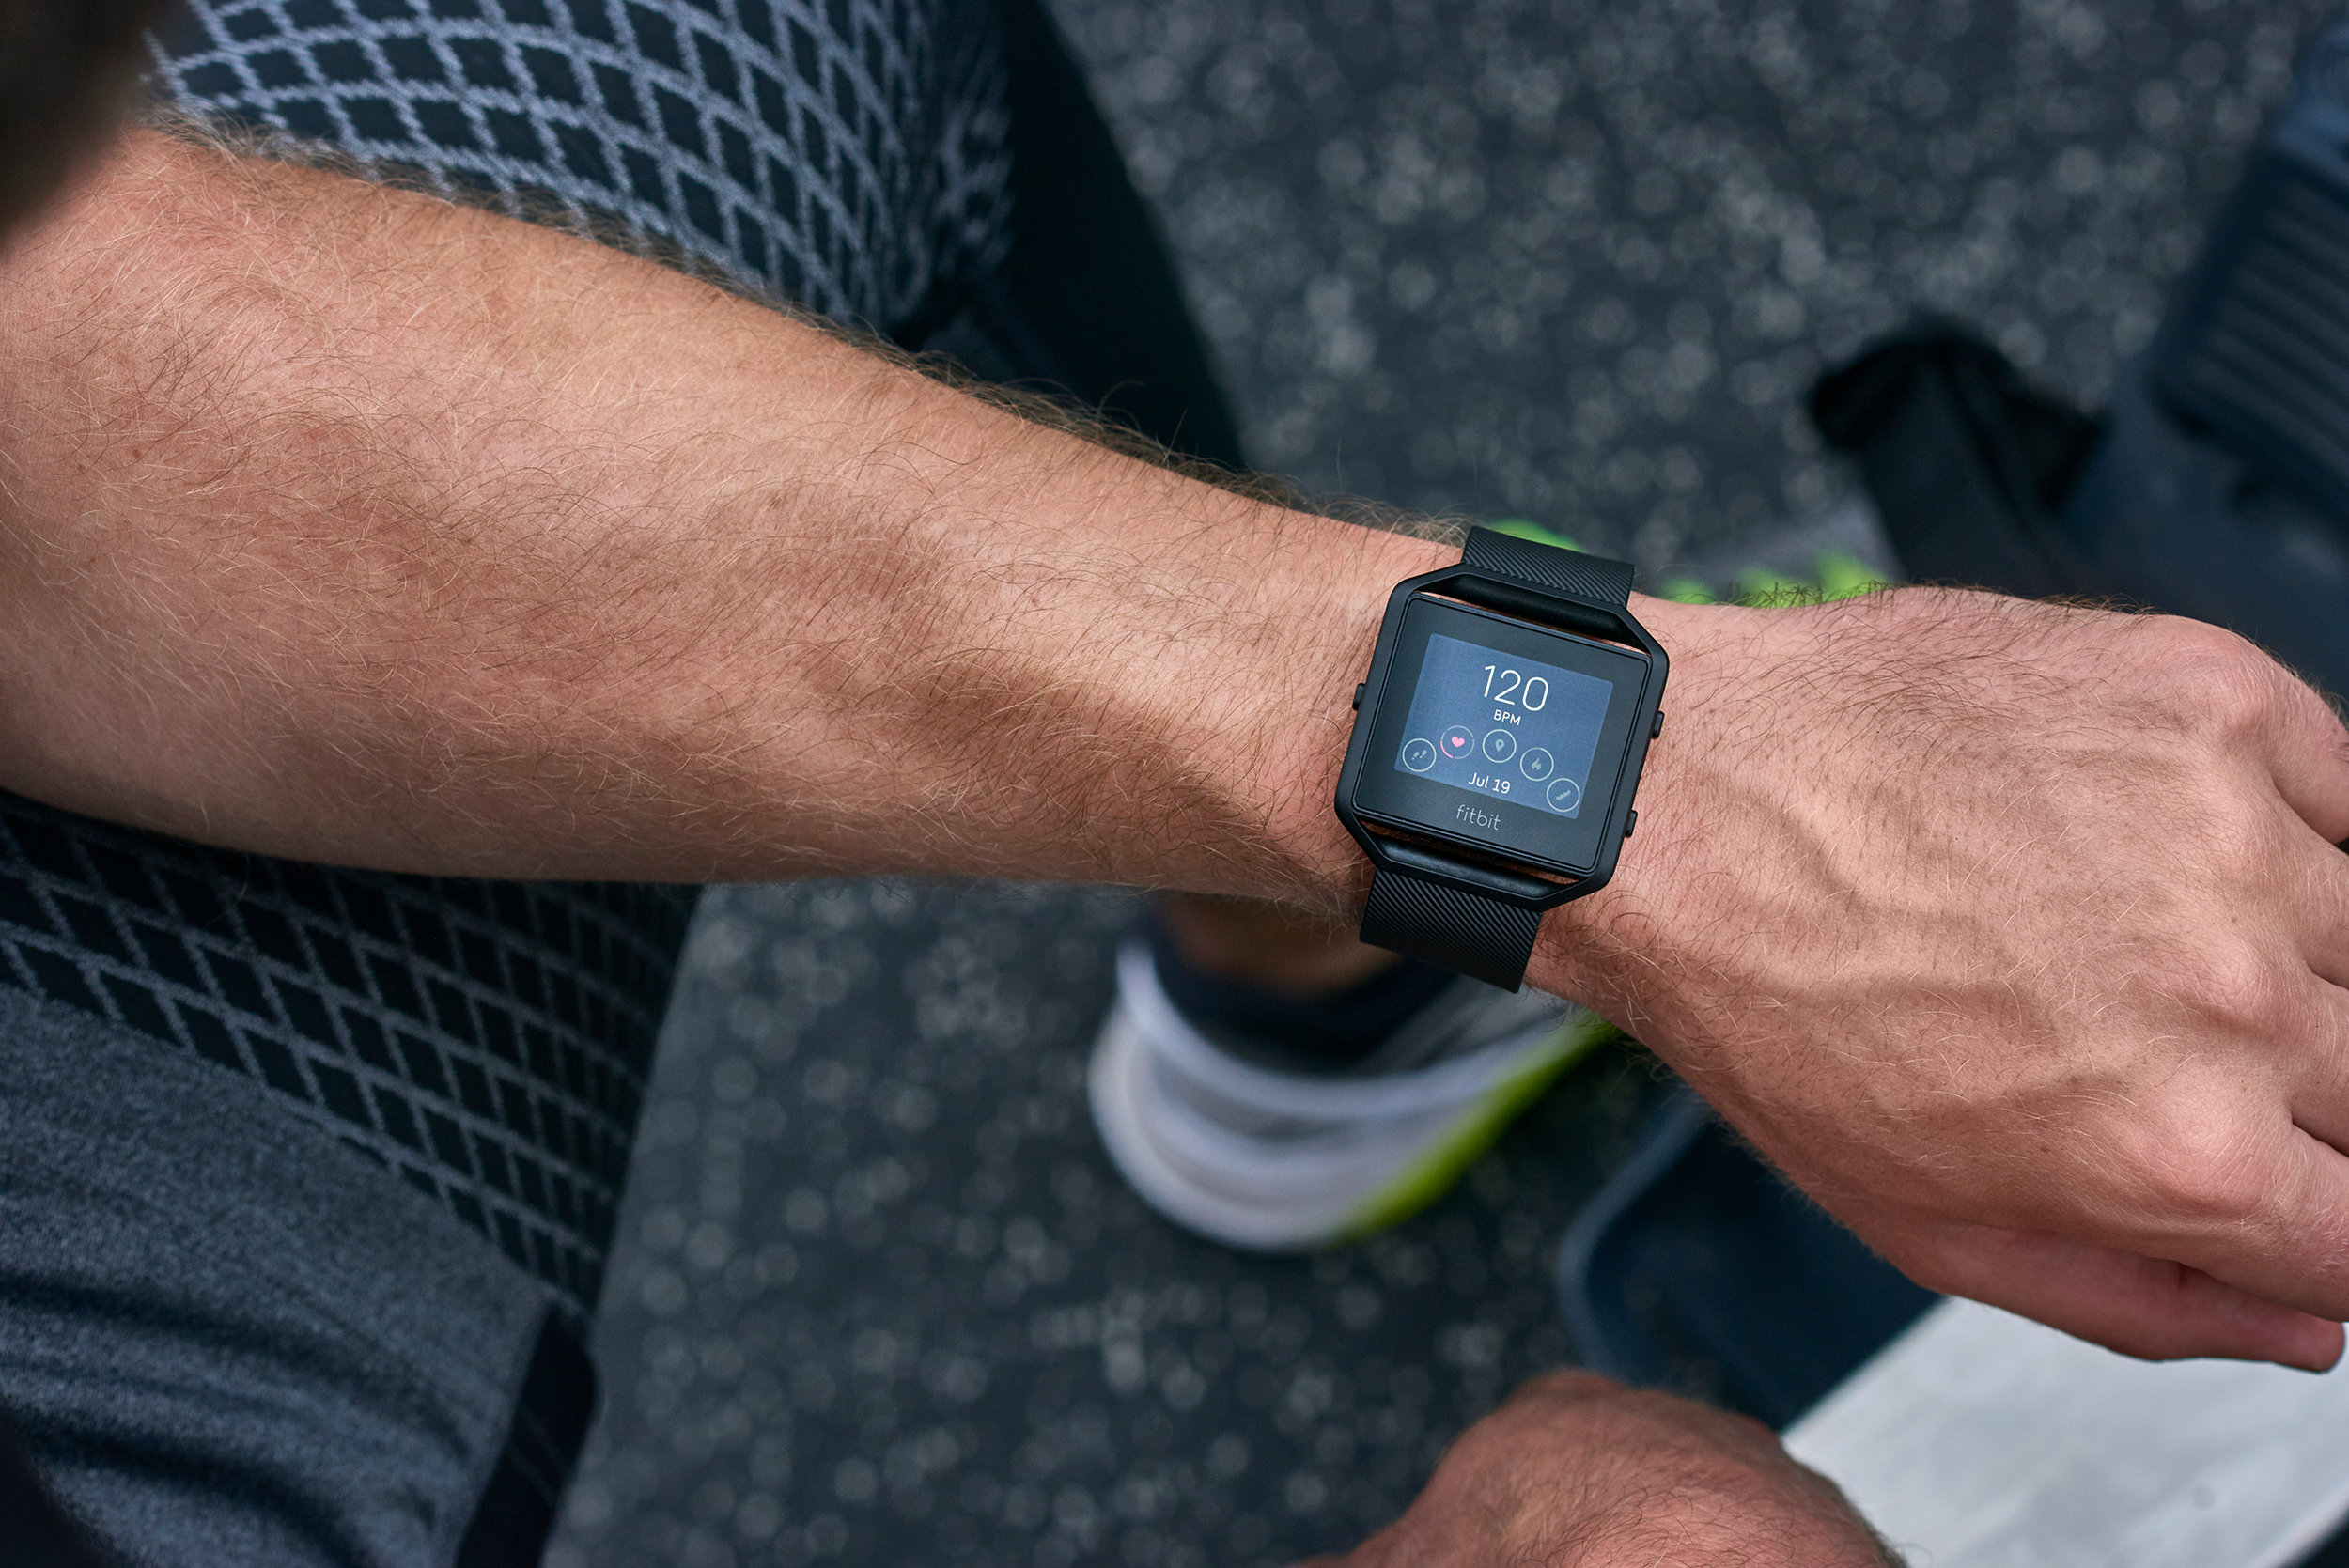 MH_Fitbit_Day_2_0575 web.jpg